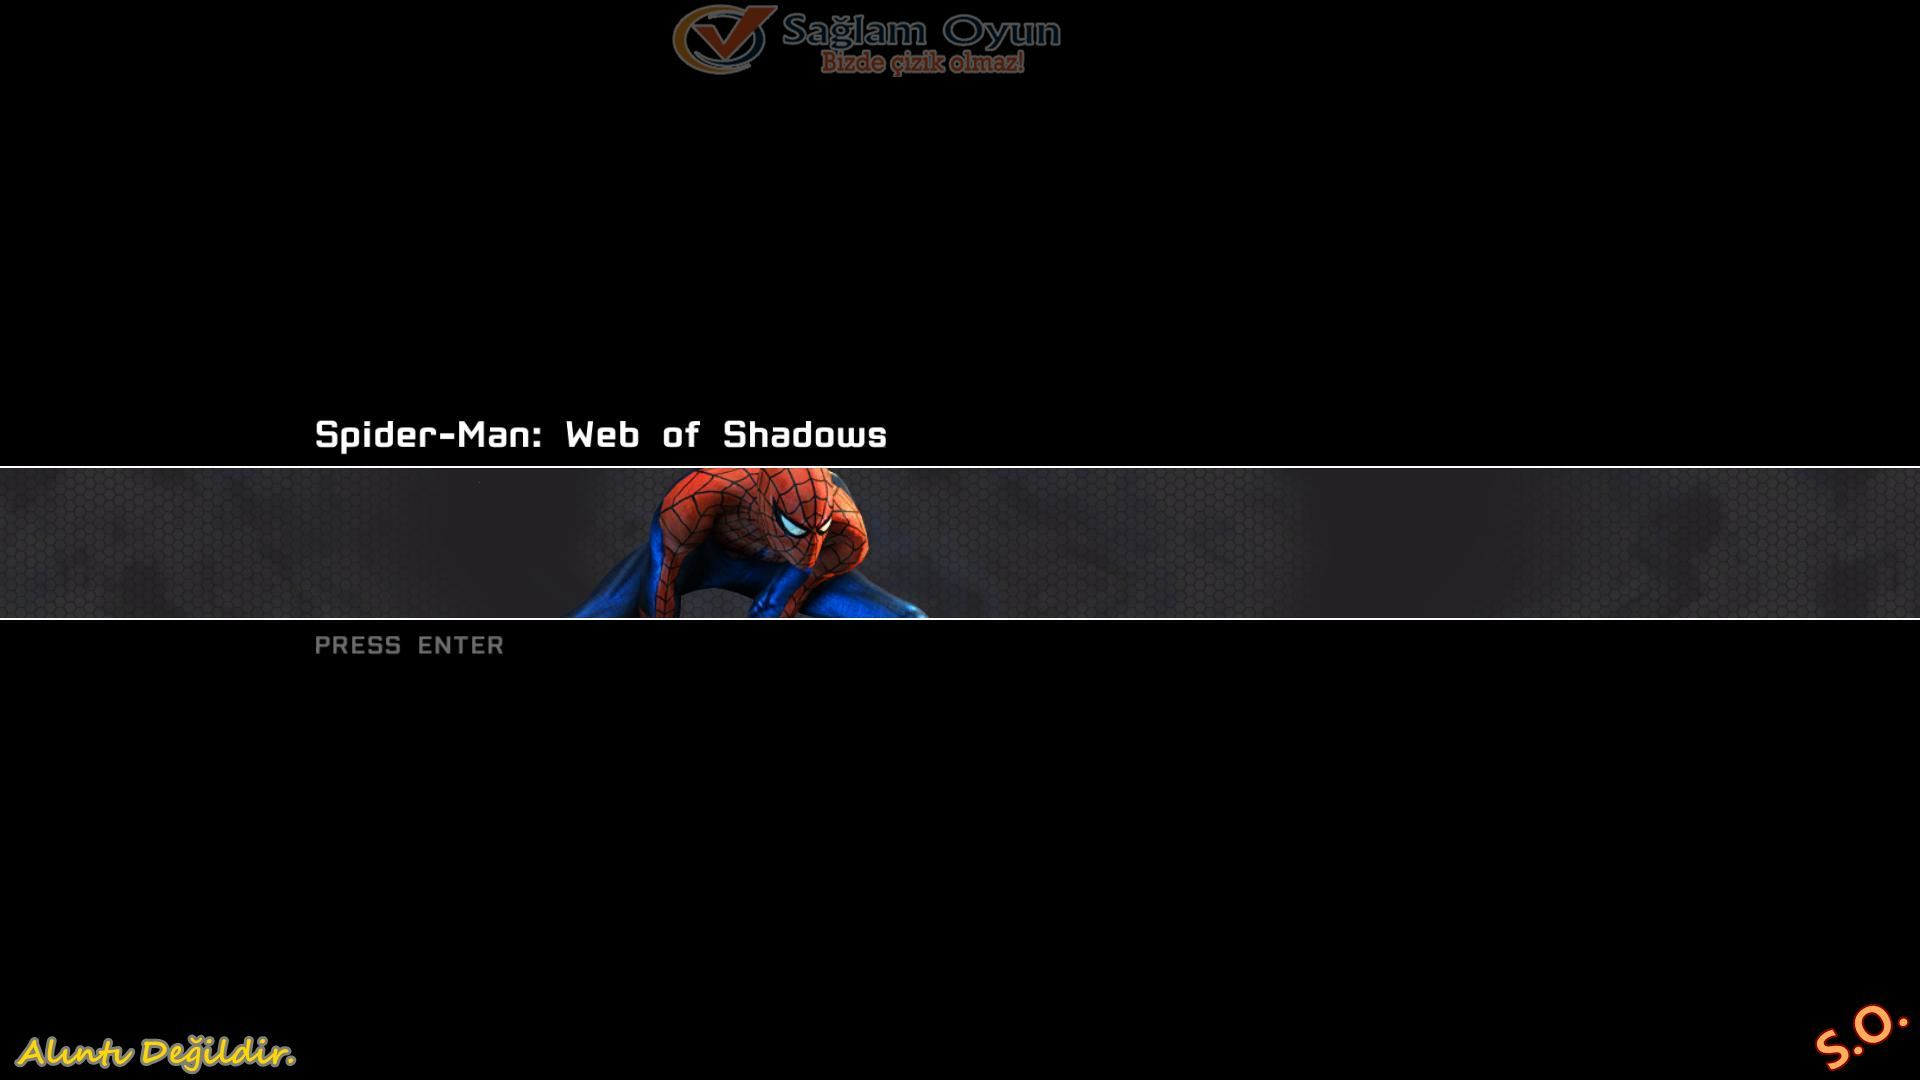 Spiderman Web of Shadows